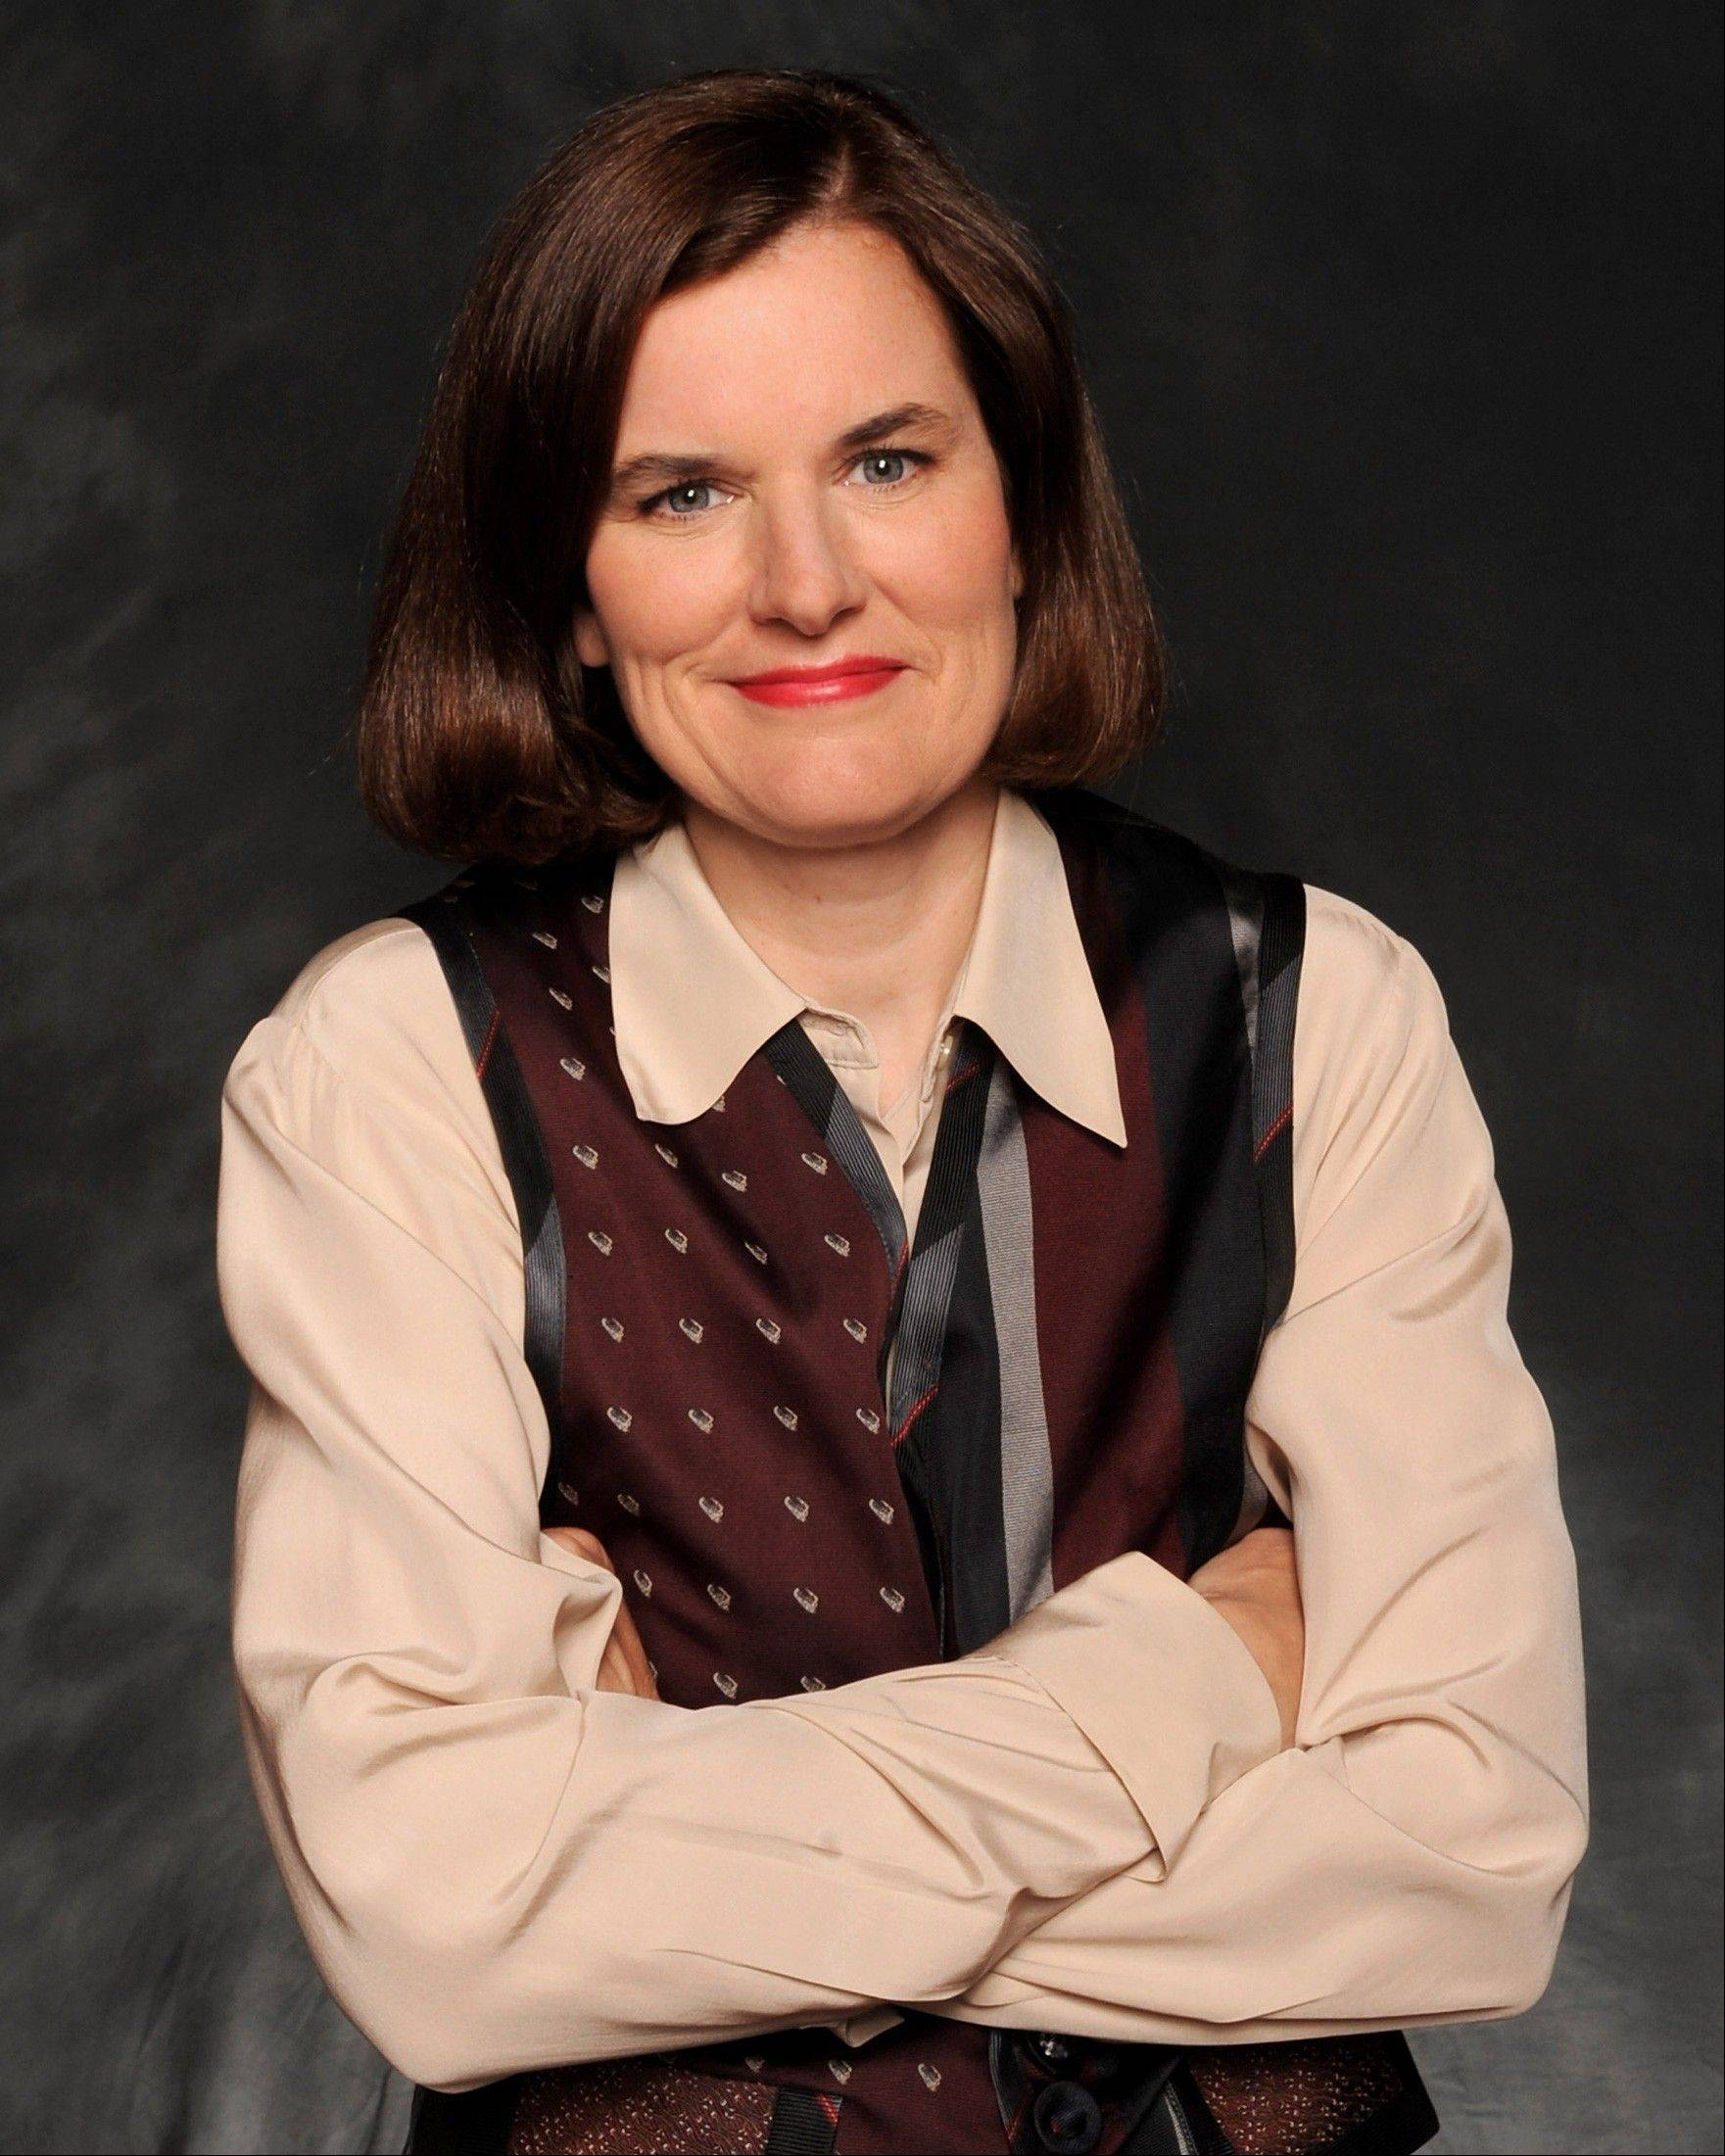 Comedian Paula Poundstone comes to the North Shore Performing Arts Center in Skokie on Friday, March 30.